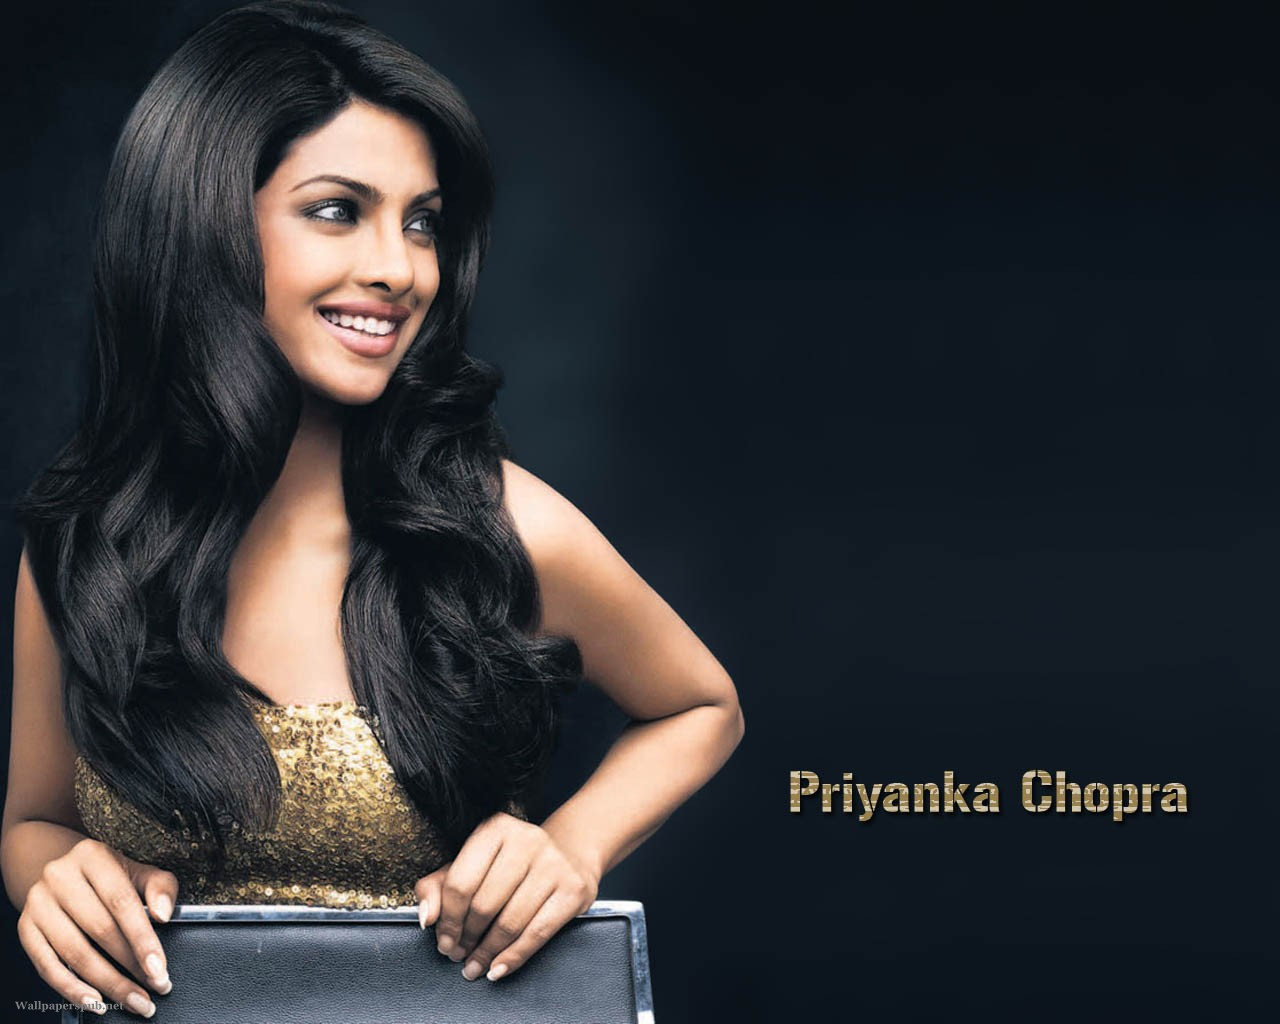 http://3.bp.blogspot.com/-qE70ZItMZOw/TutTQLYh7pI/AAAAAAAALVc/25BuWnezfqk/s1600/Priyanka_Chopra_Agneepath_wallpapers_don2_wallpapers_cute_smile.jpg